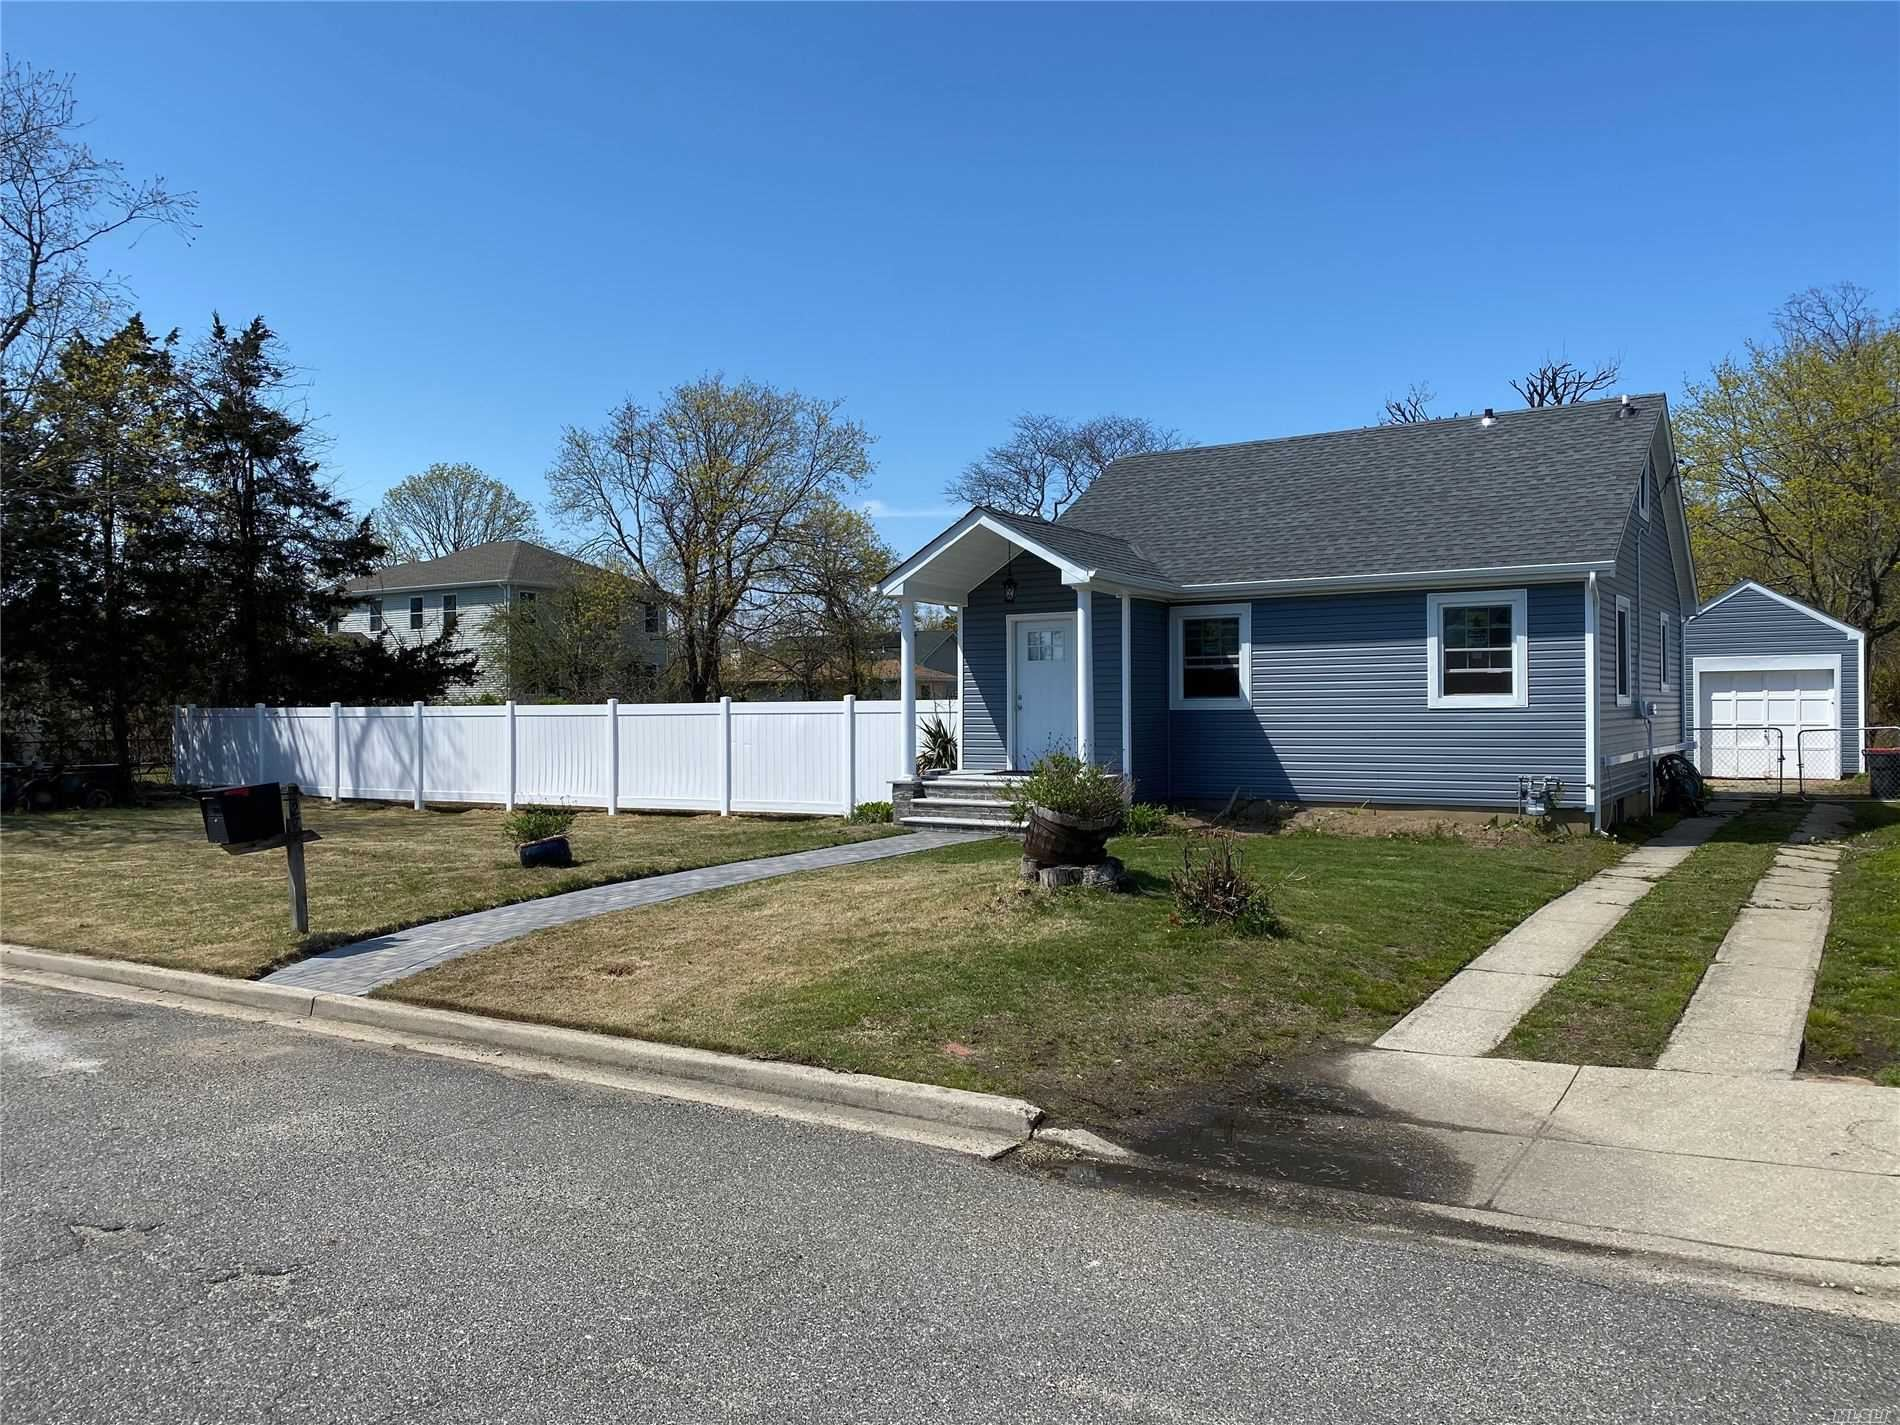 27 E Lincoln Avenue, Massapequa, NY 11758 - MLS#: 3203496